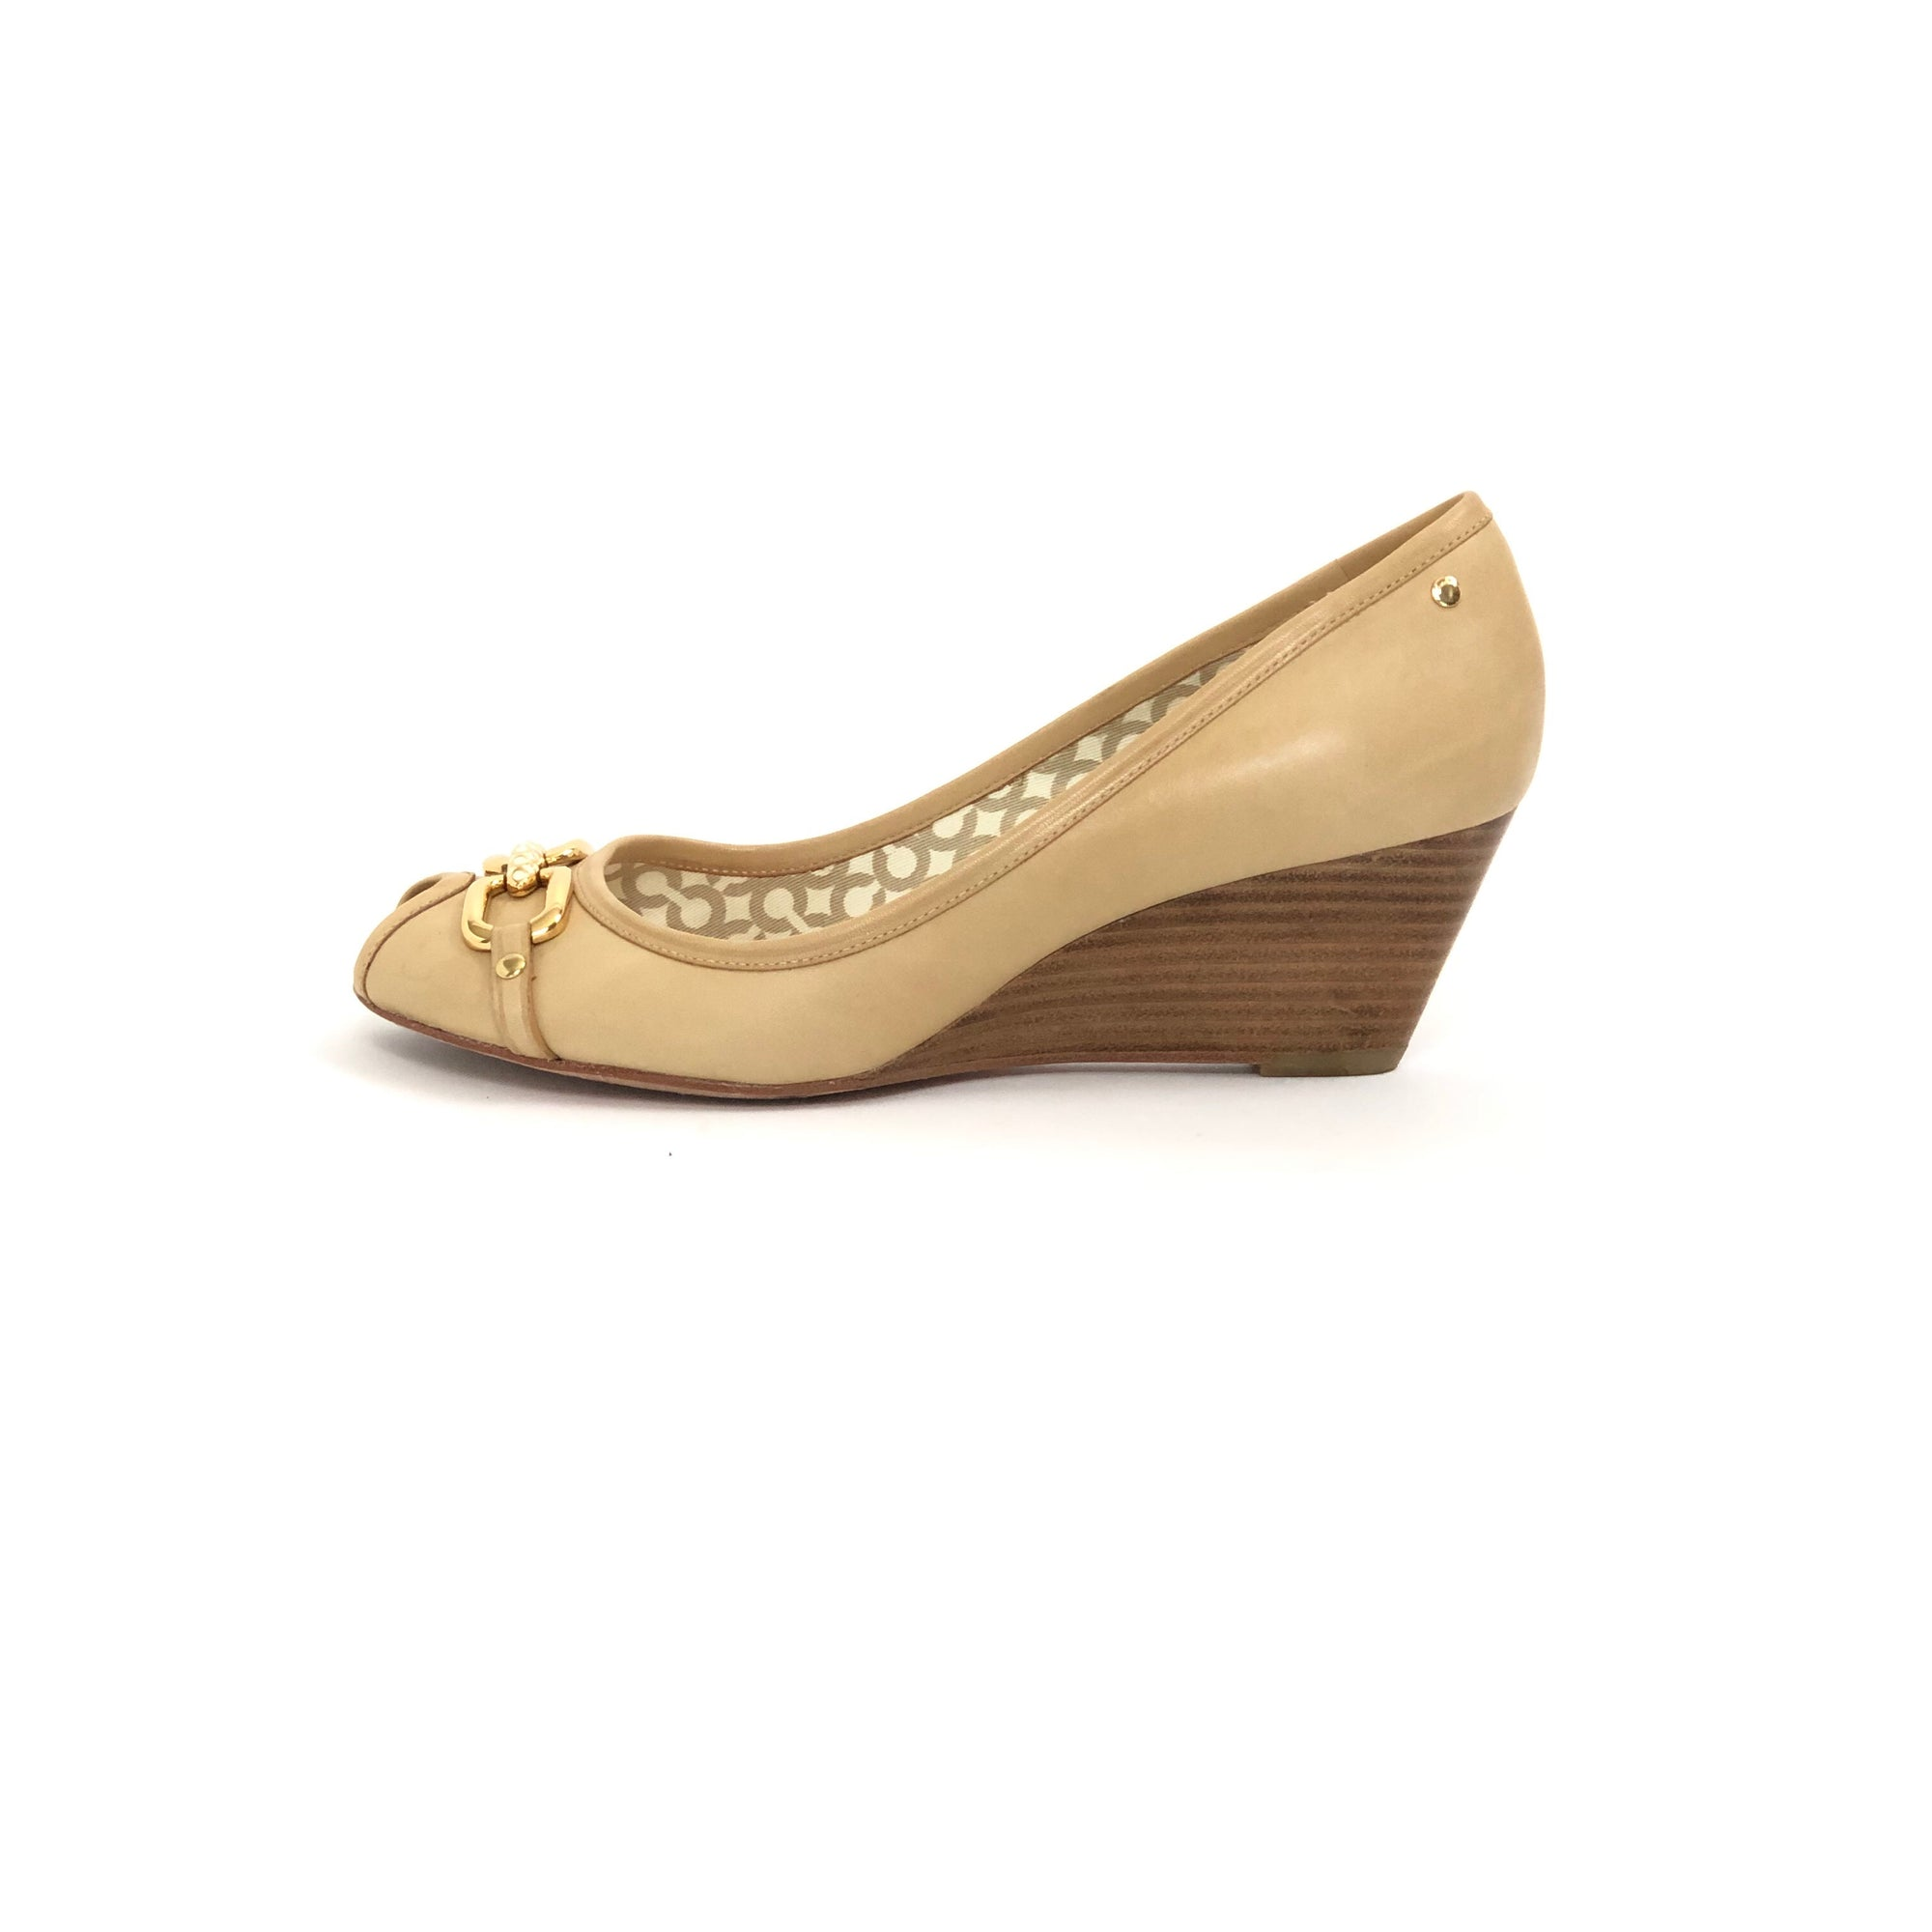 ladiesoflux - Coach Shelby Peep Toe Wedge Nude, Size 7 - Ladies Of Lux - Shoes